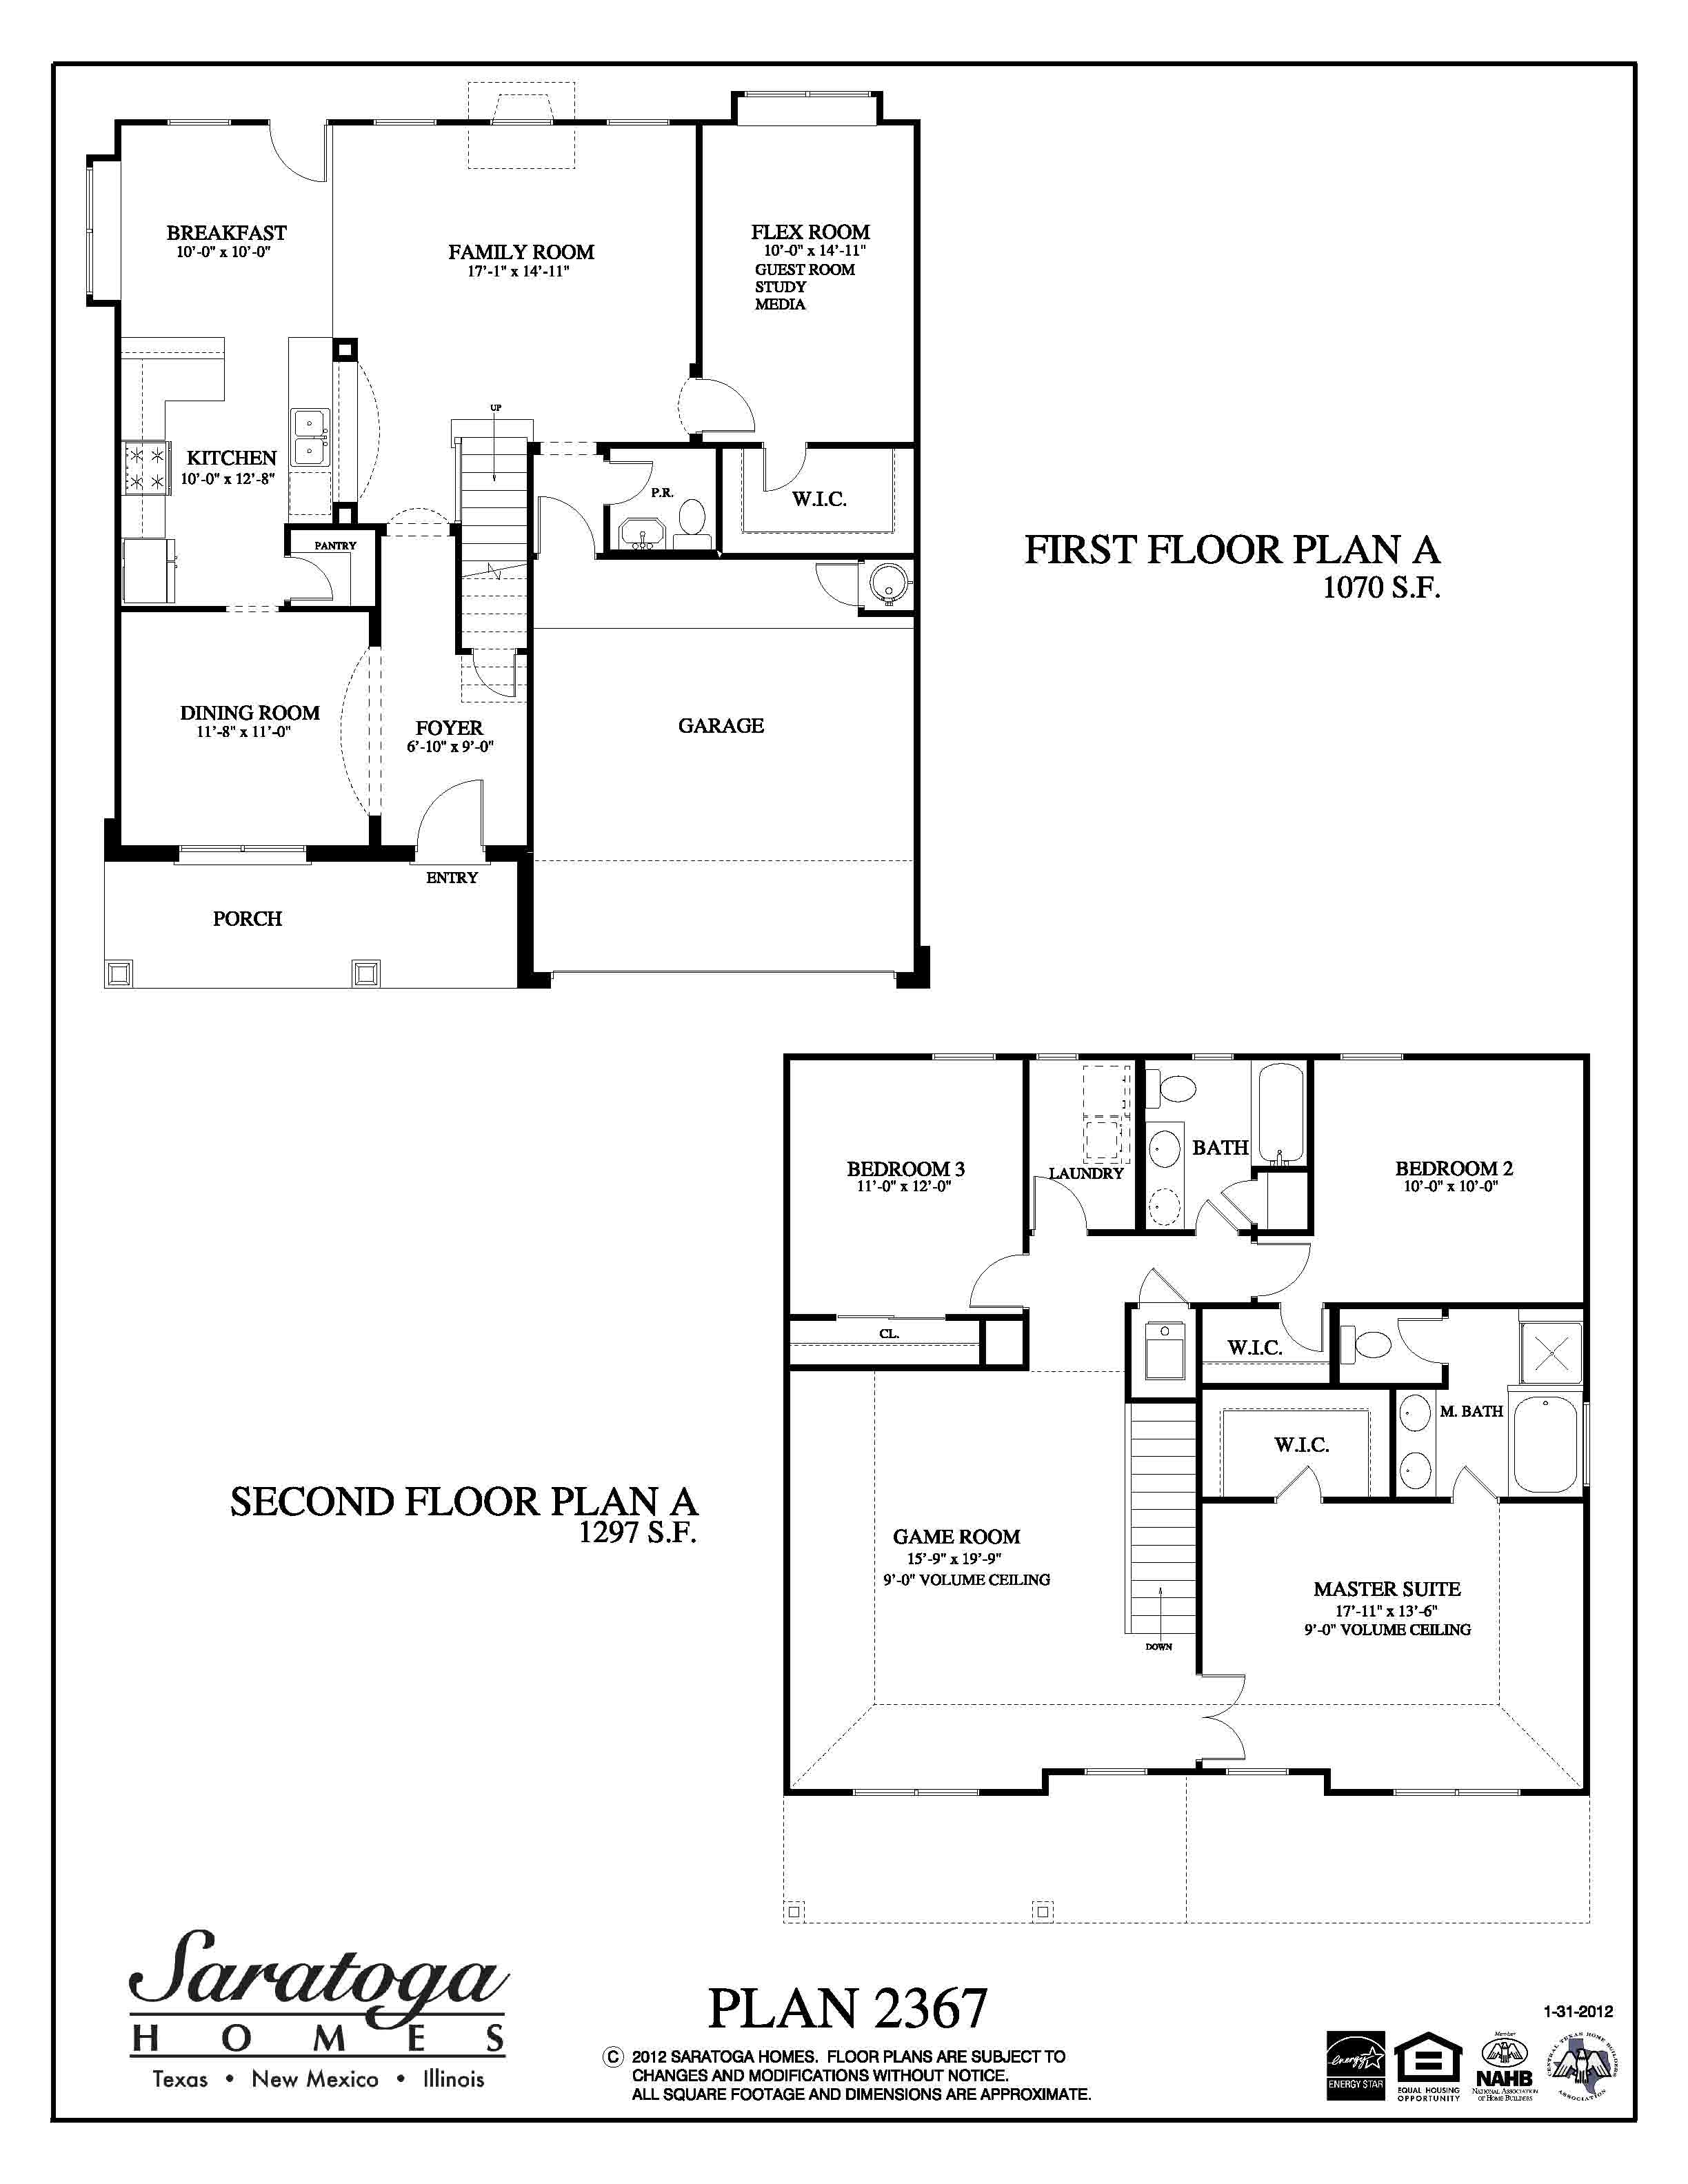 Plan 2367 saratoga homes houston for Houston home plans